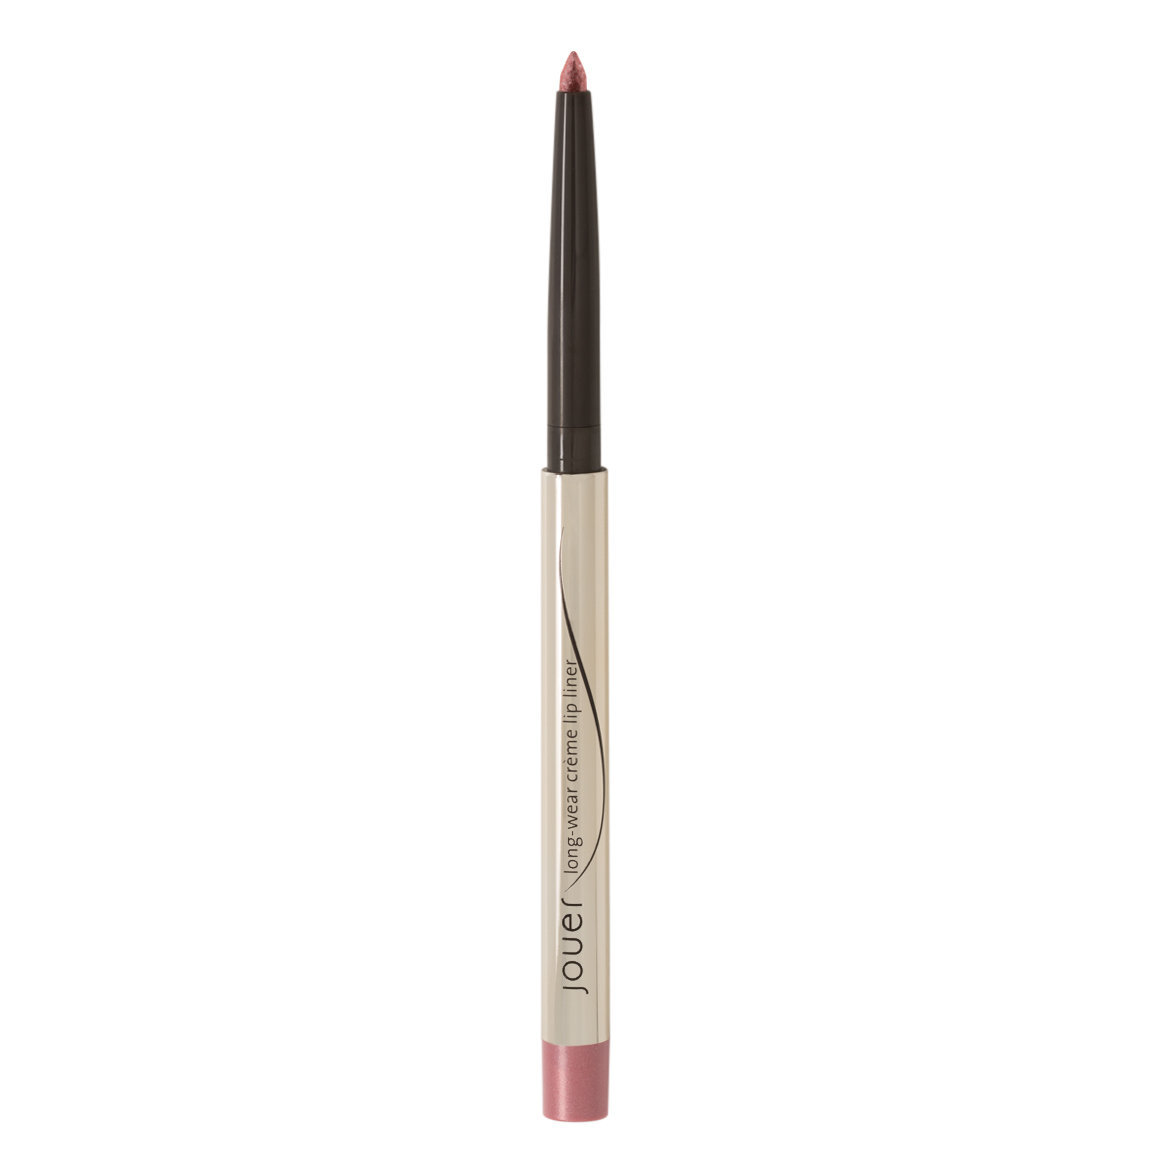 Jouer Cosmetics Long-Wear Crème Lip-Liner Pink Champagne Shimmer